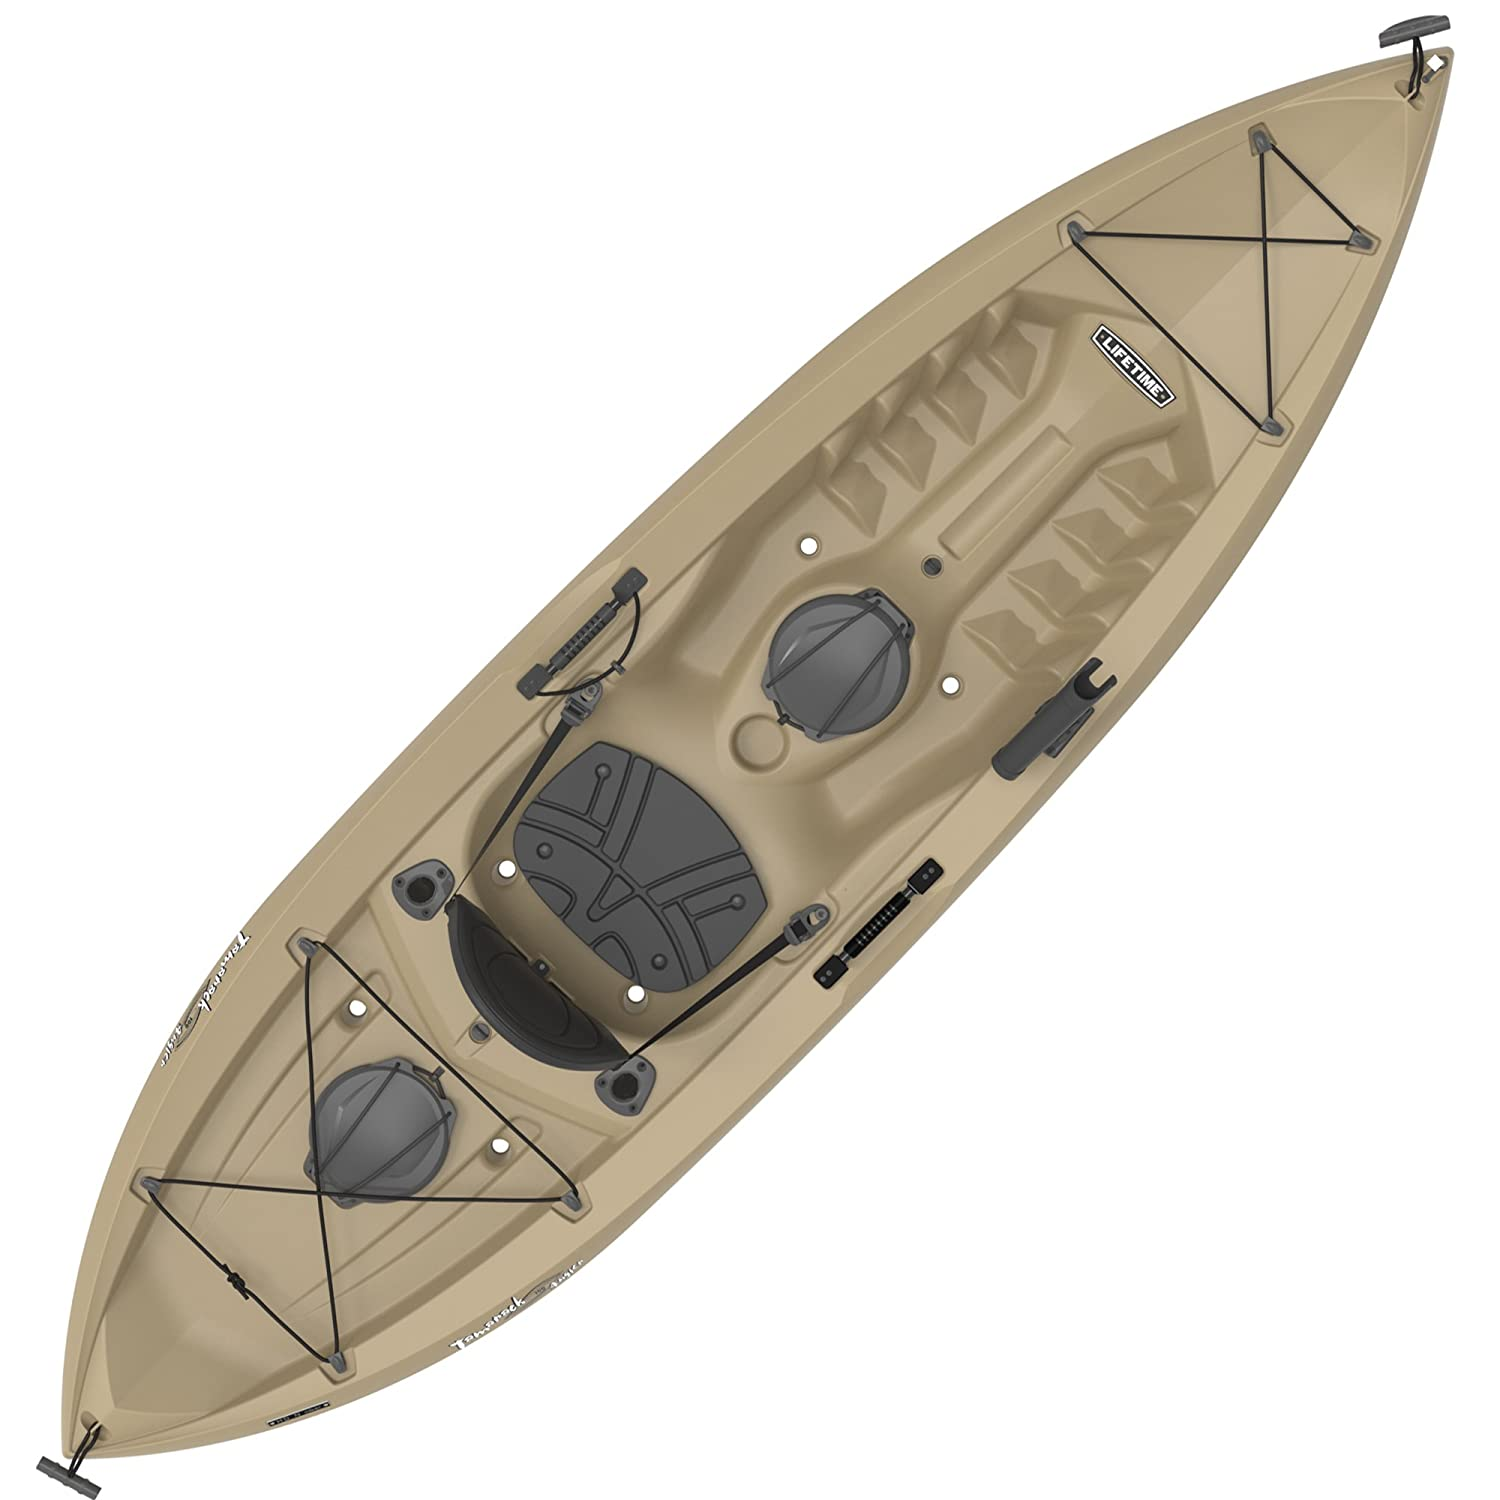 Lifetime Tamarak Angler 100 | The Best for General Stability - One of the best cheap fishing kayak